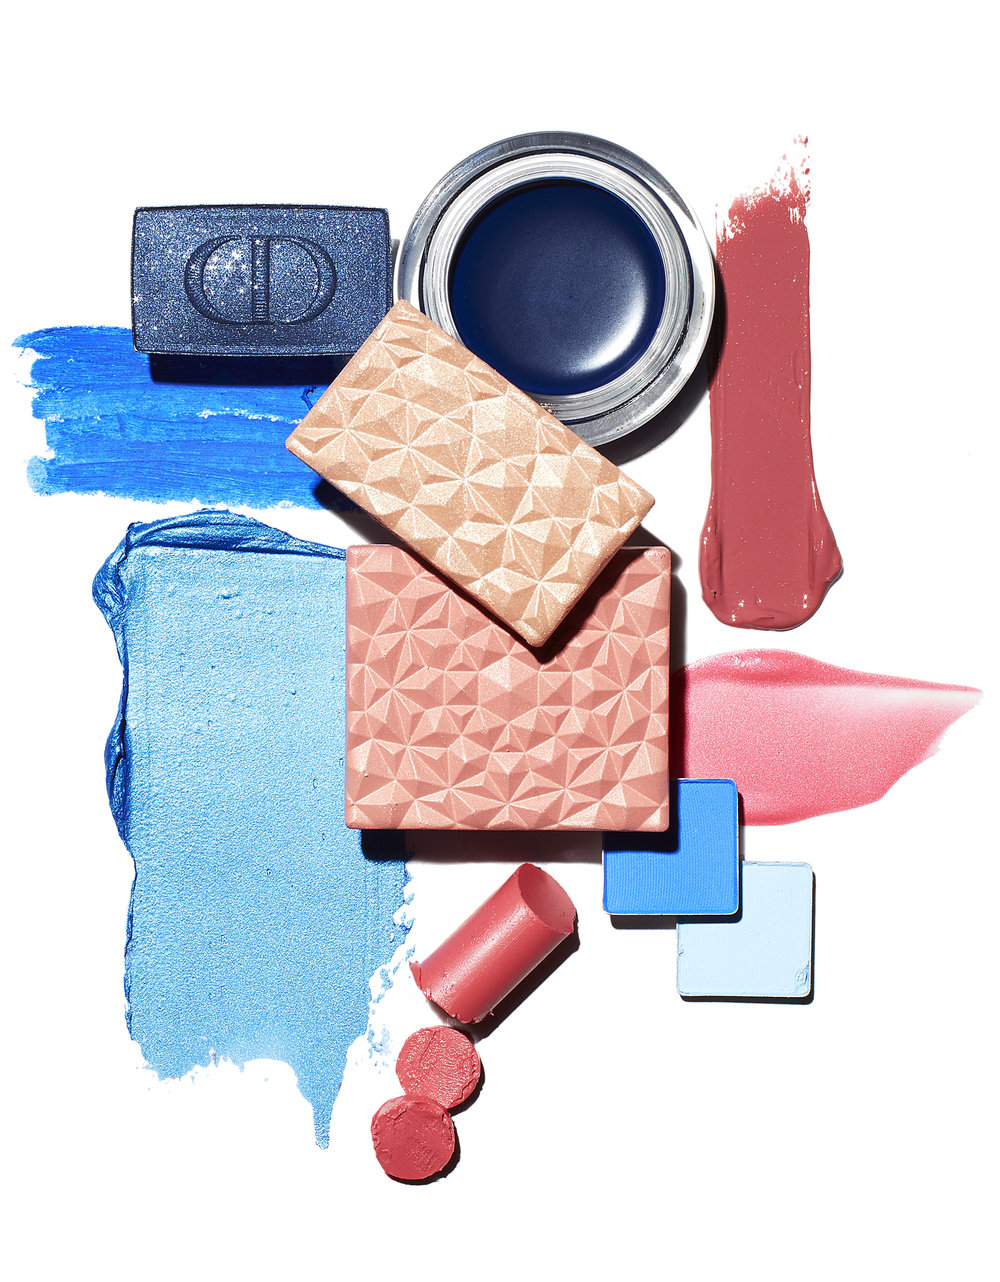 Cosmetics-Composition.jpg